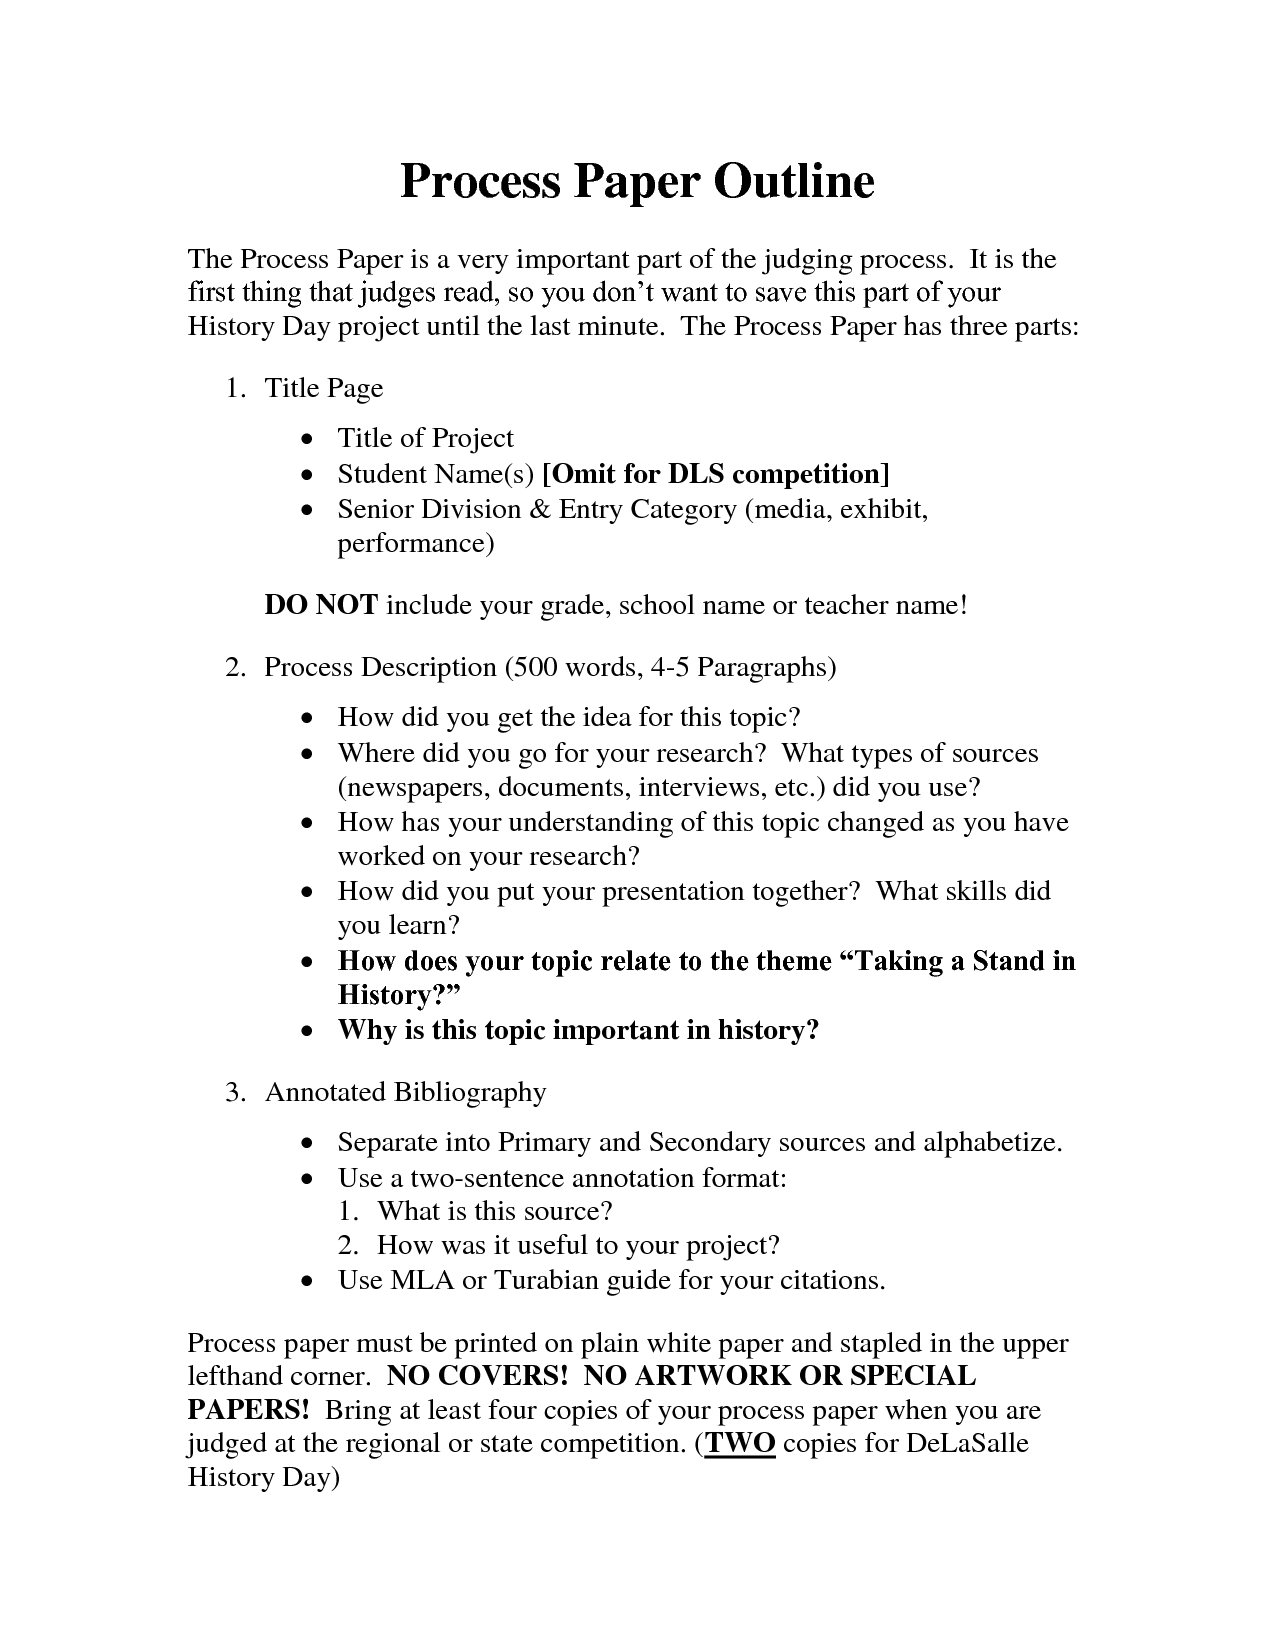 Process Essay Format  Elitamydearestco Best Photos Of Current Events Paper Outline Definition Essay Outline  Process  Essay Format